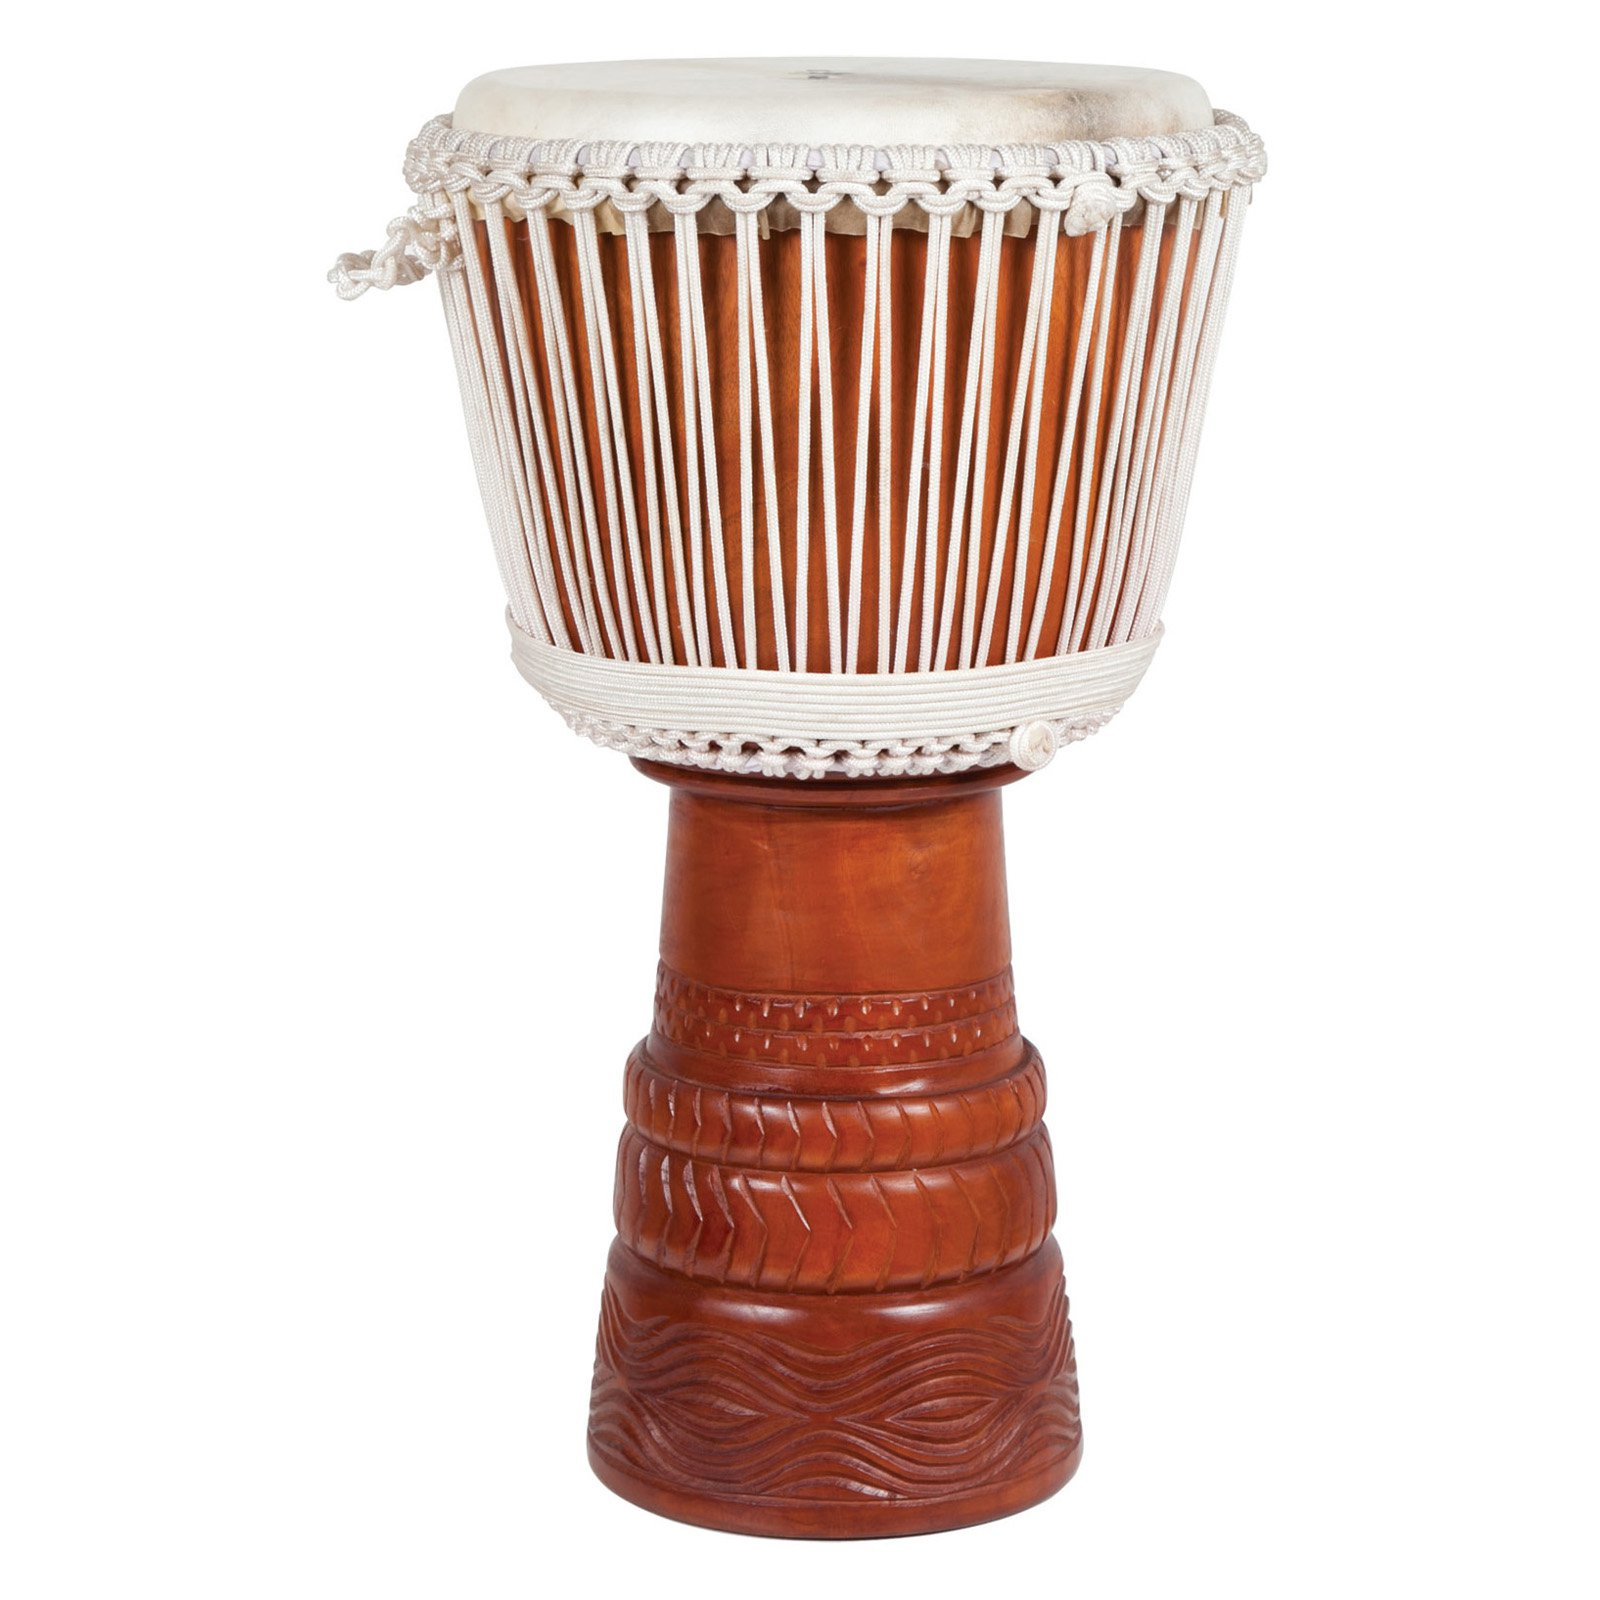 X8 Drums Elite Ivory Djembe Drum